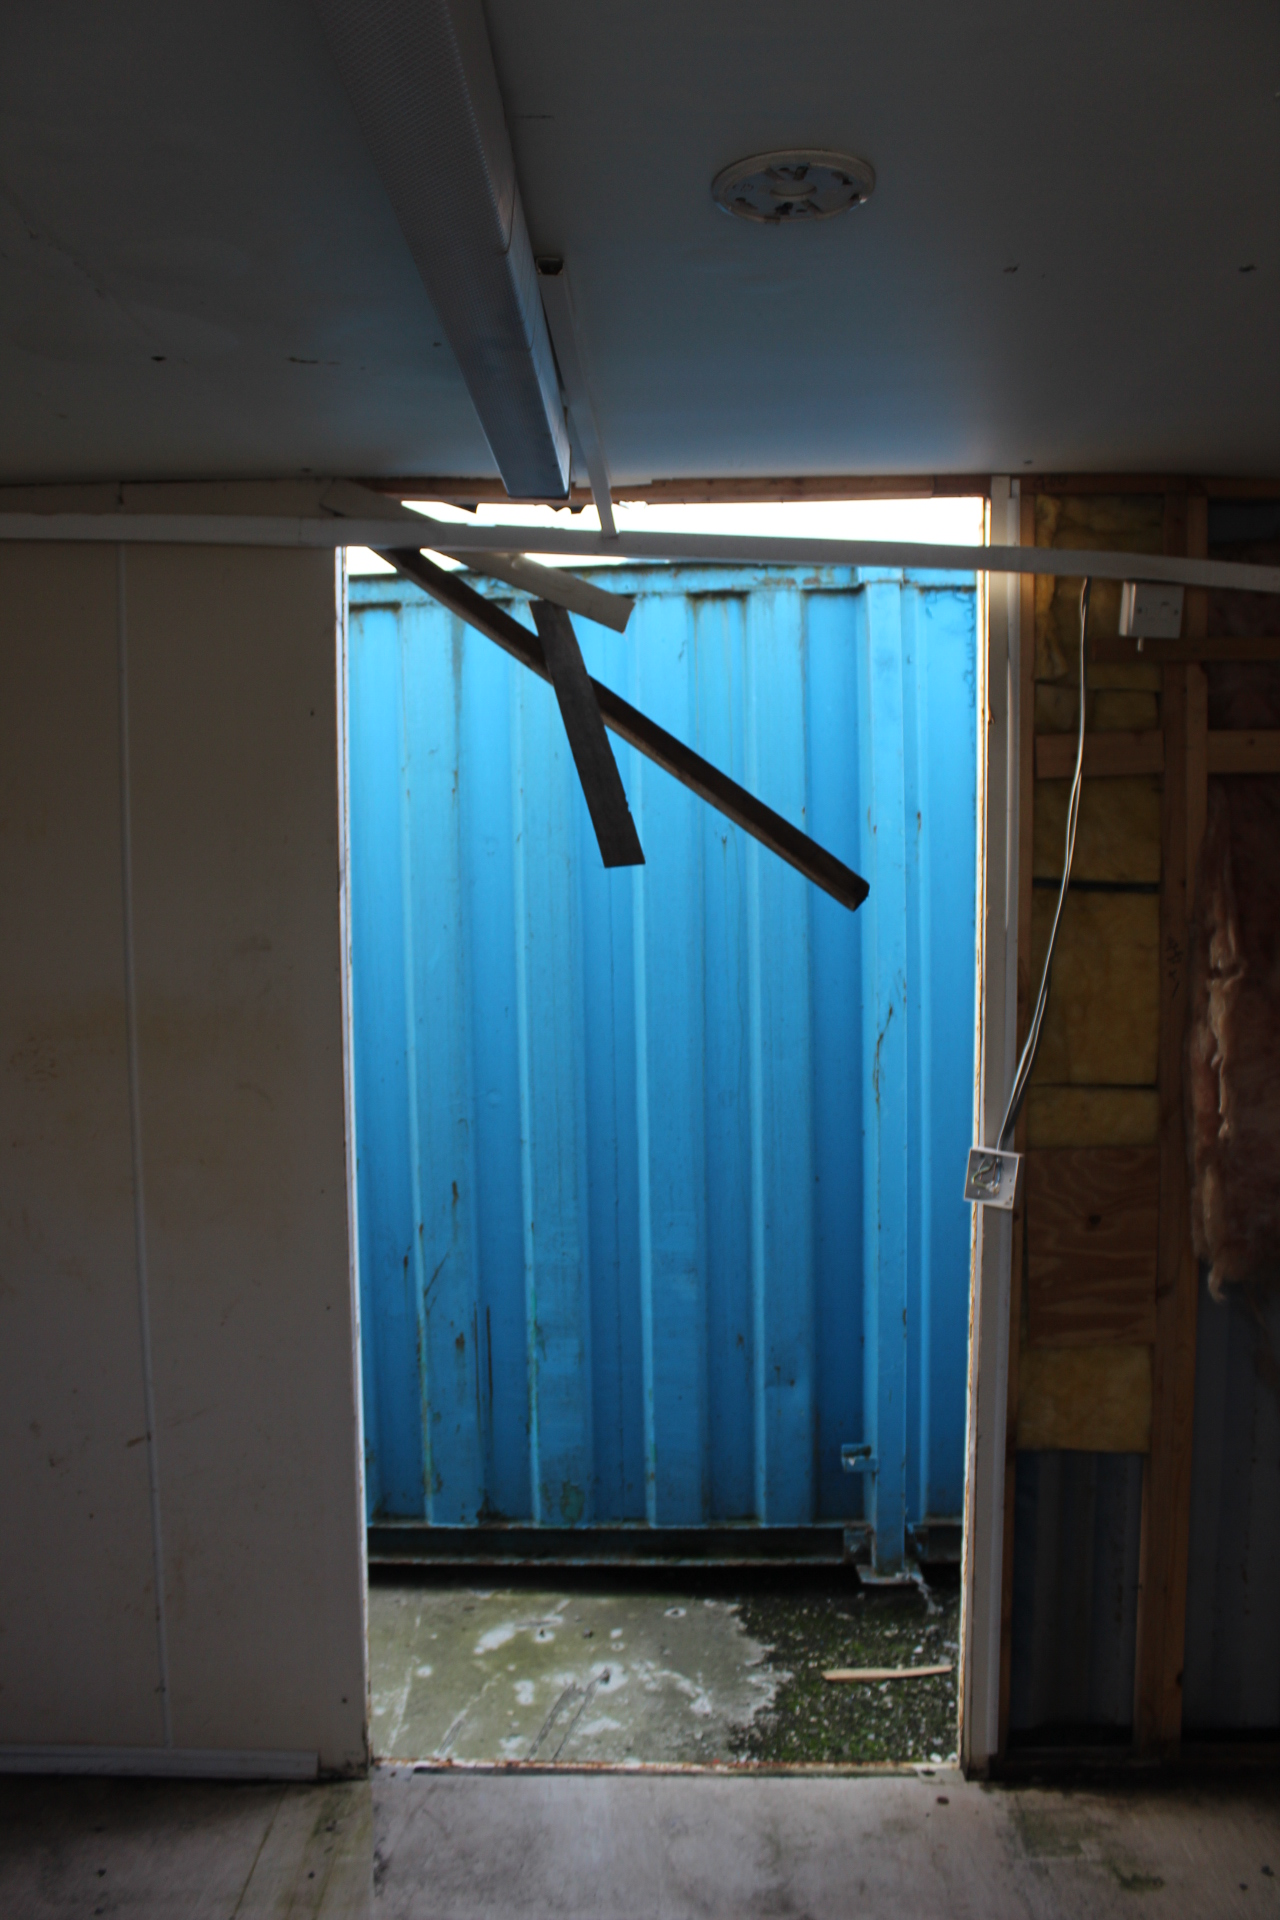 Esp14563 34 32ft x 10ft containerised jack leg linkway for 10ft by 10ft room